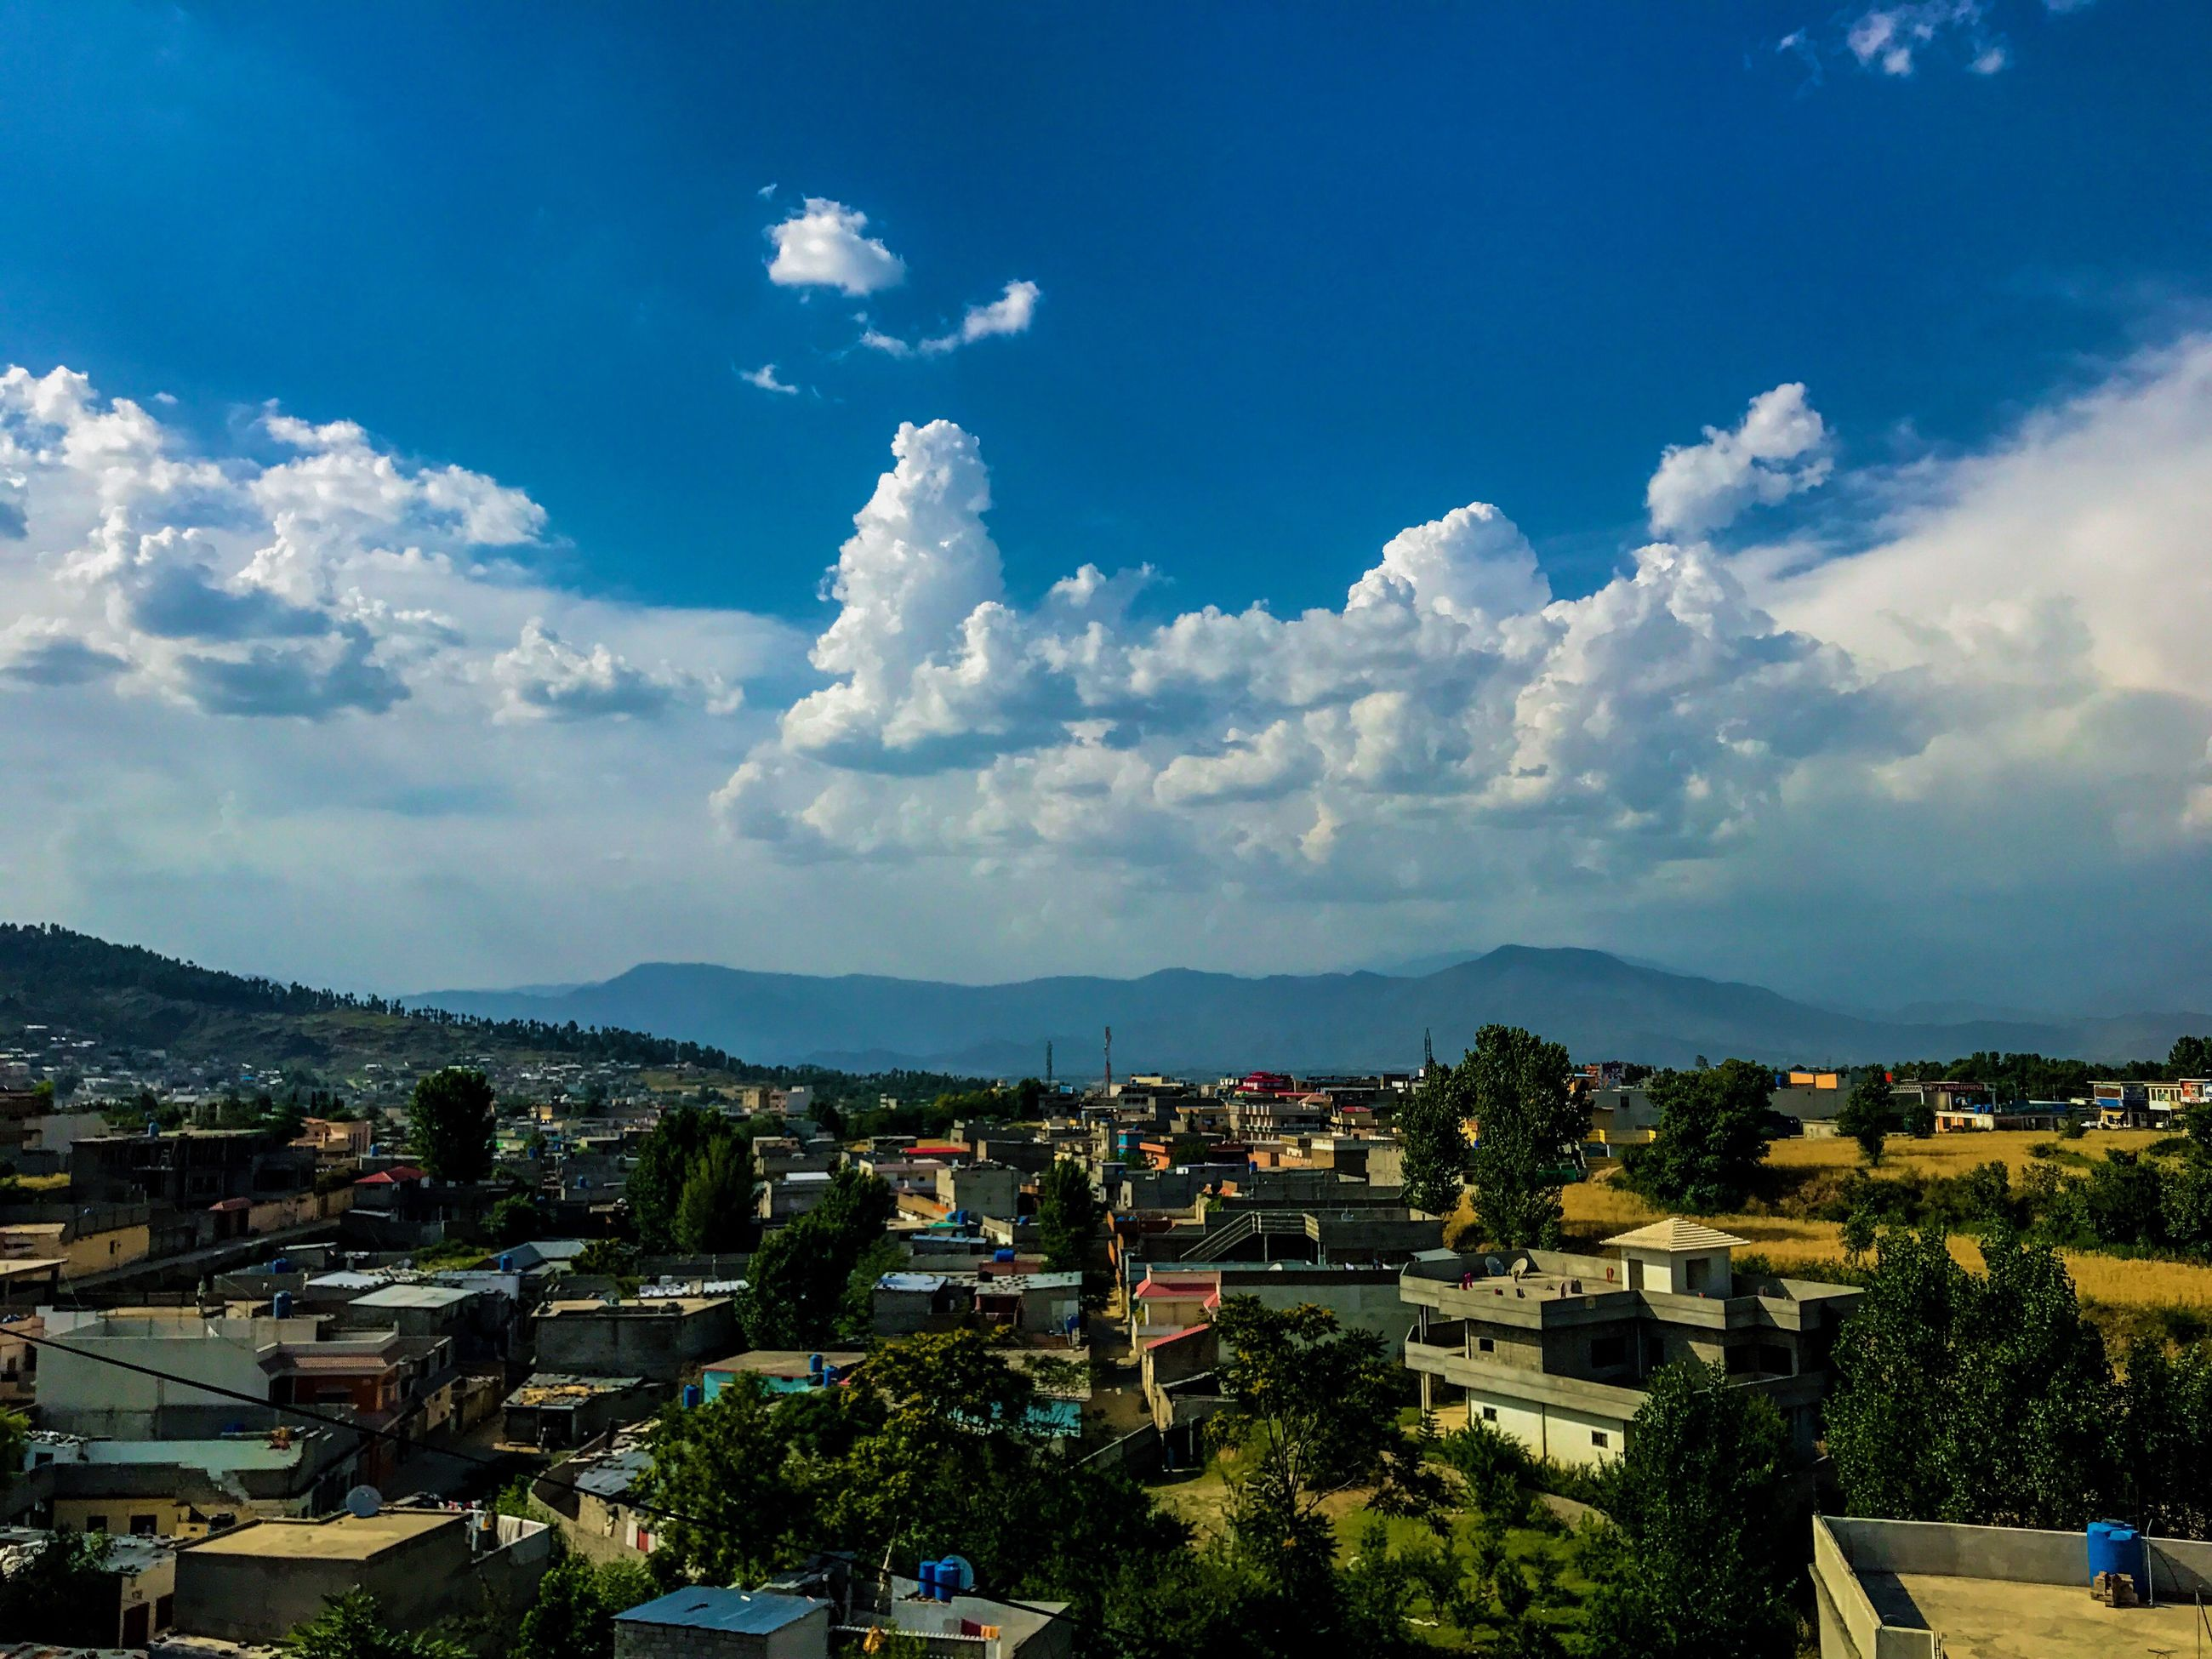 architecture, building exterior, built structure, sky, cloud - sky, high angle view, town, crowded, house, mountain, residential building, outdoors, day, roof, city, cityscape, scenics, community, tree, beauty in nature, nature, residential